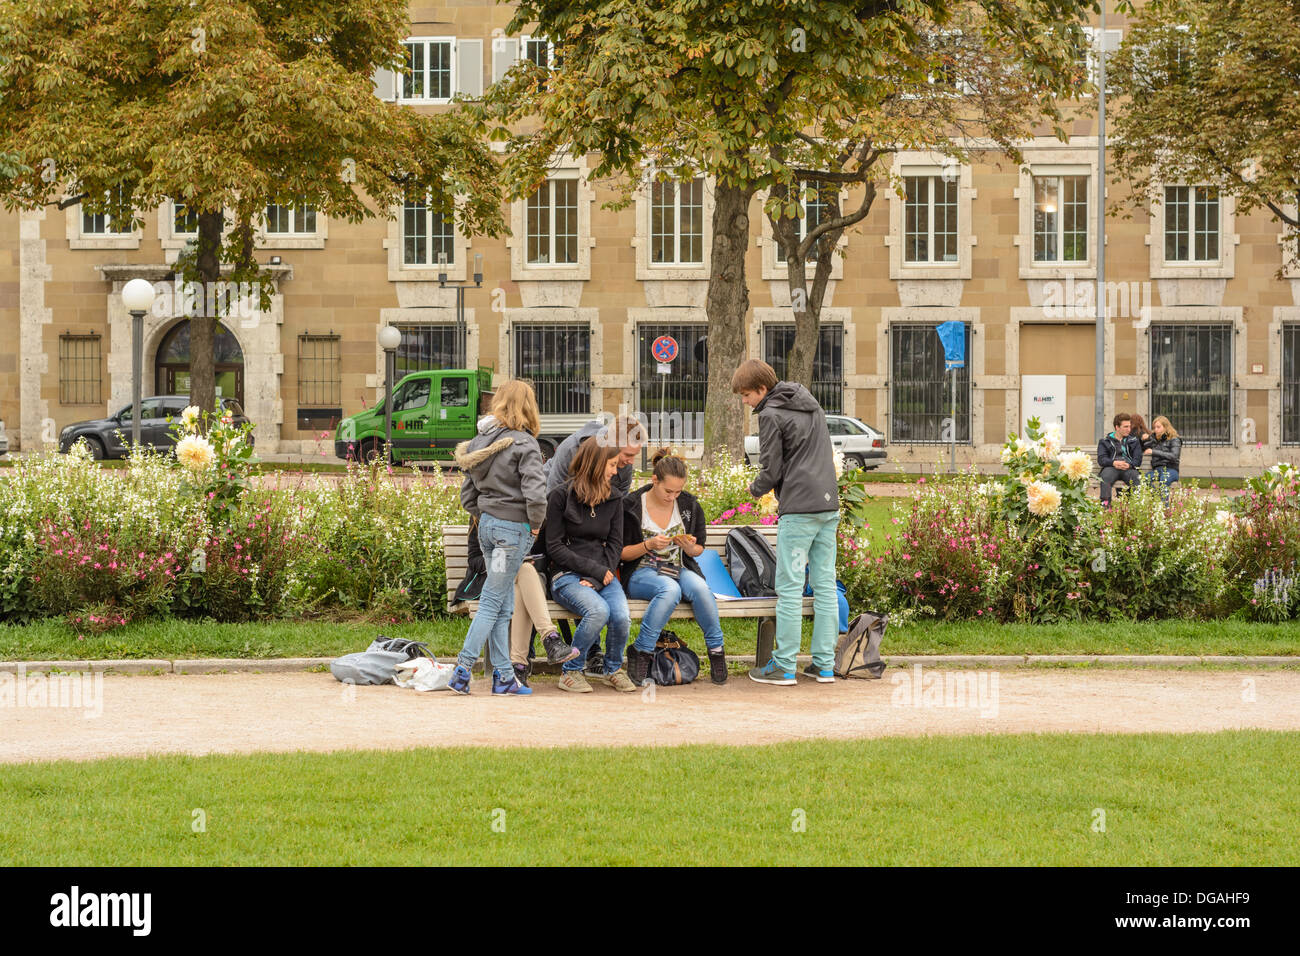 Young Caucasian people, boys and girls, teenagers, chilling out on a park bench - Stuttgart Germany Stock Photo